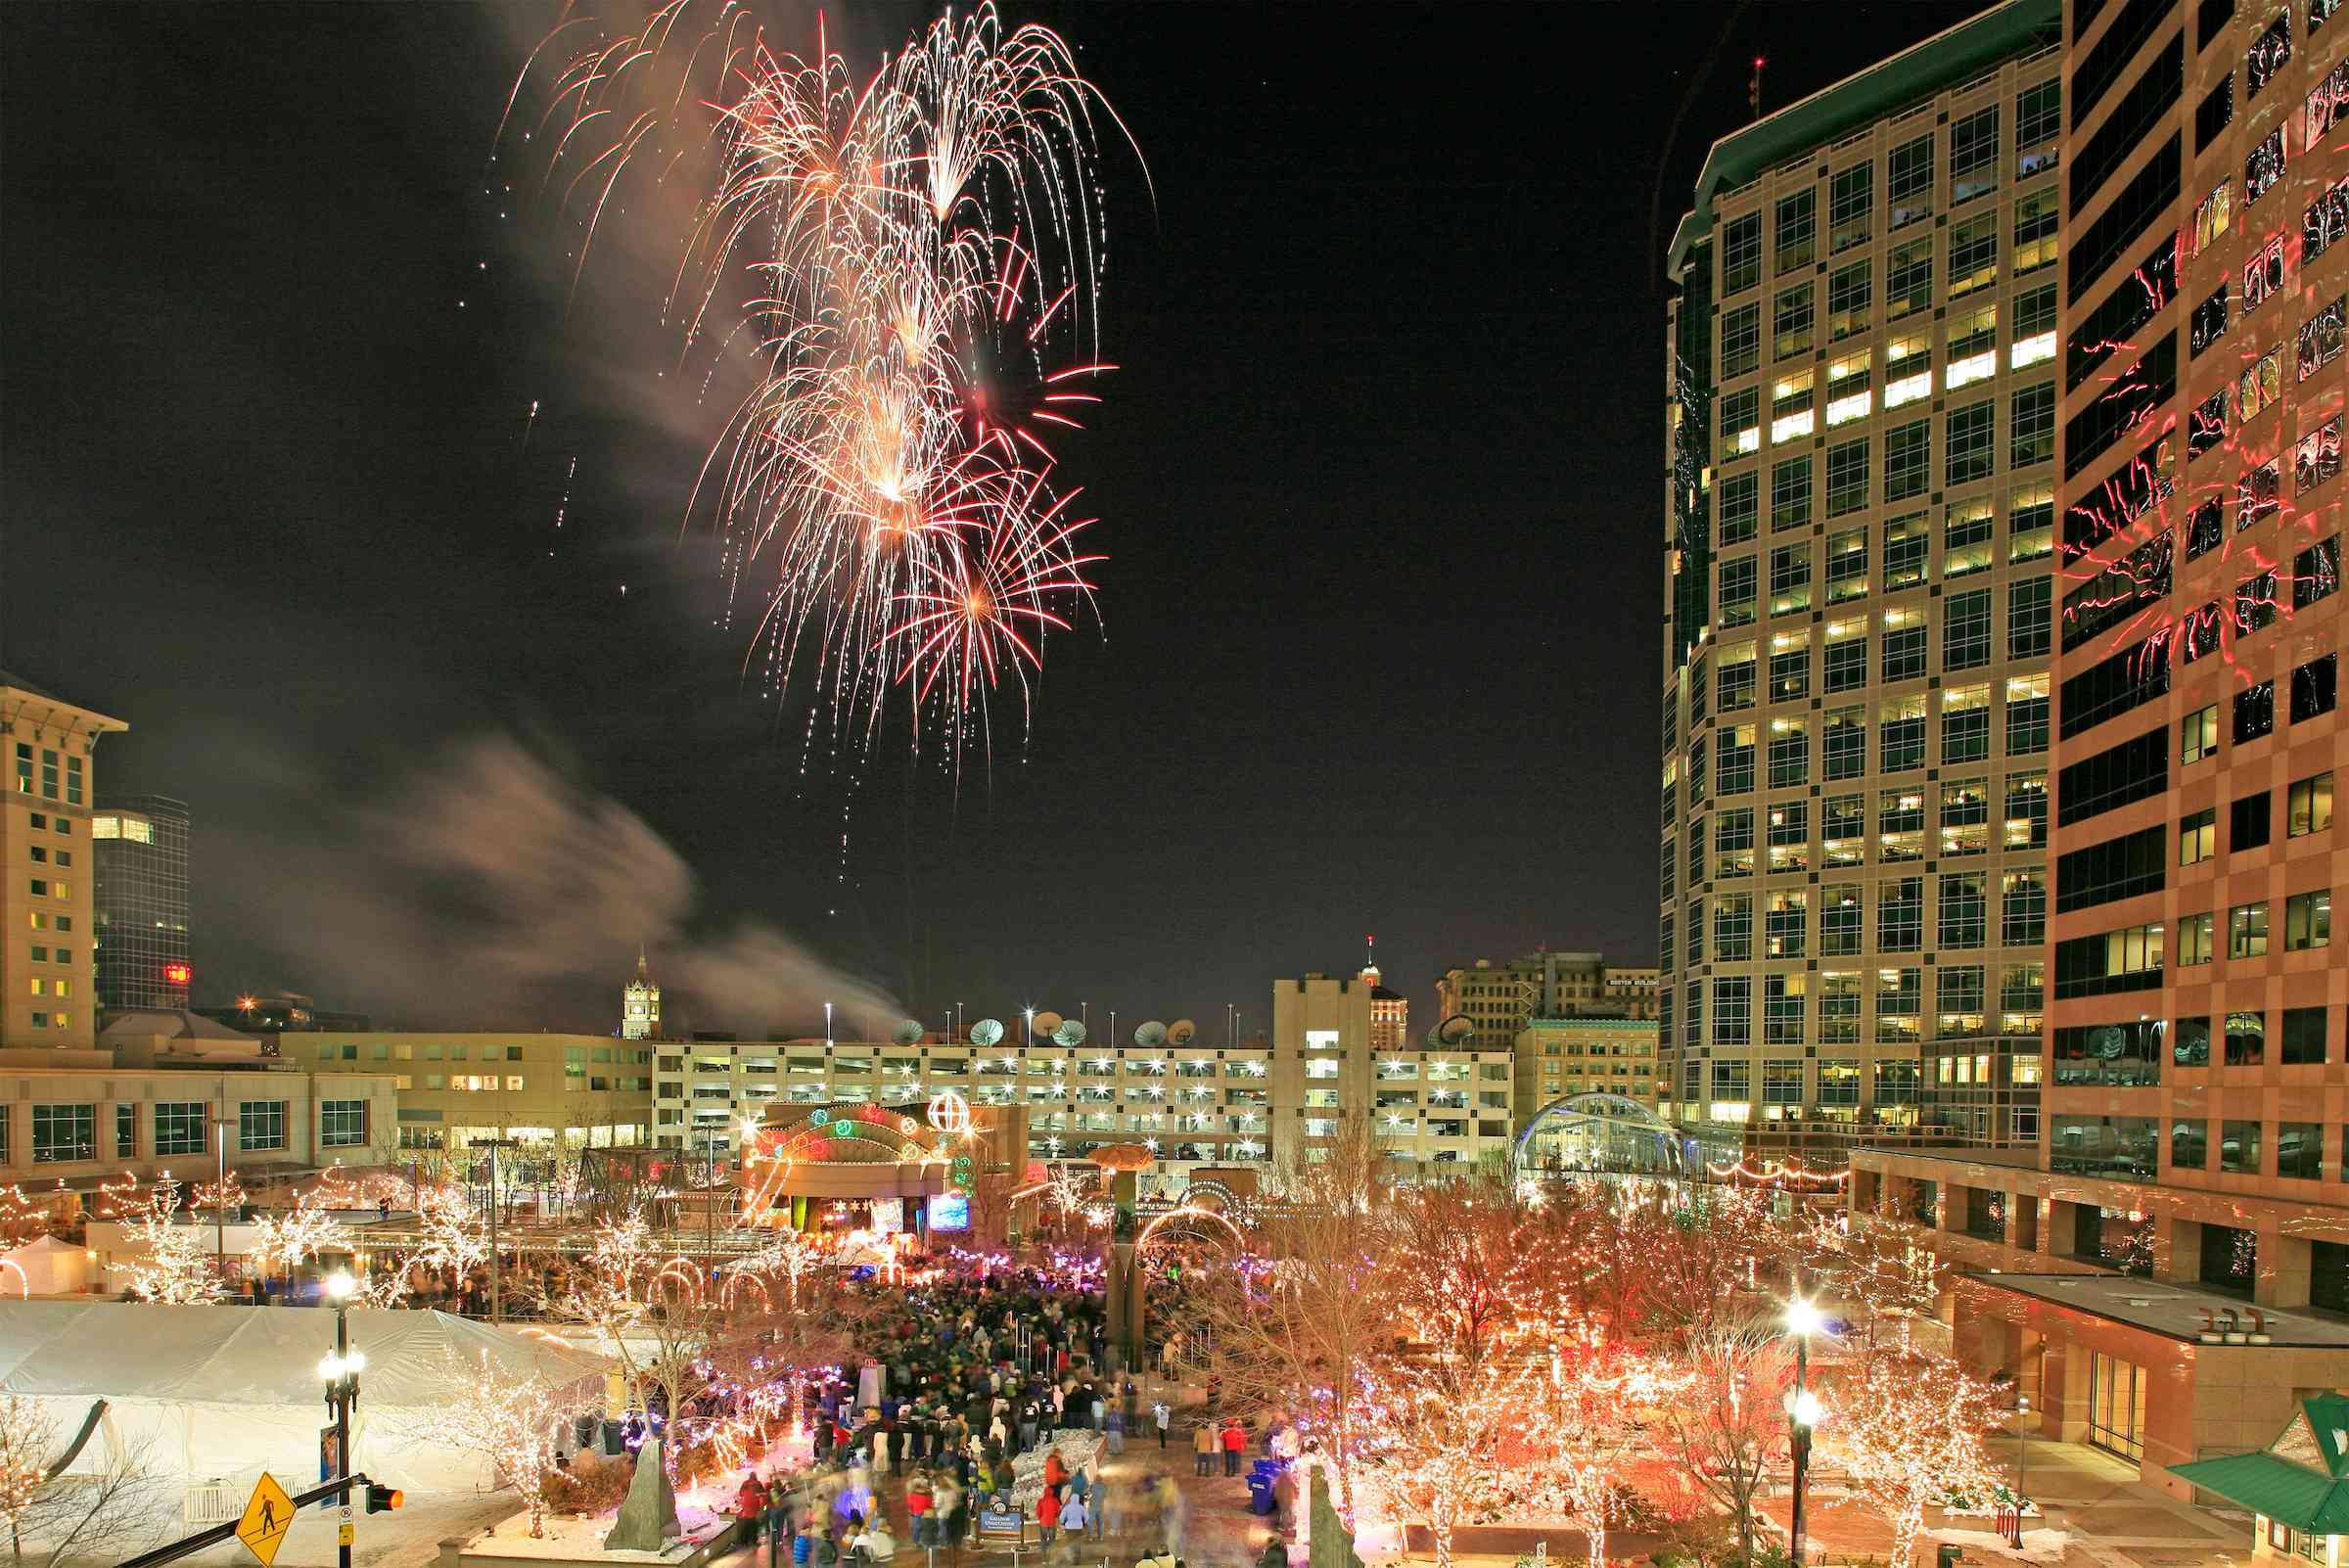 Salt Lake City during New Years Eve with fireworks